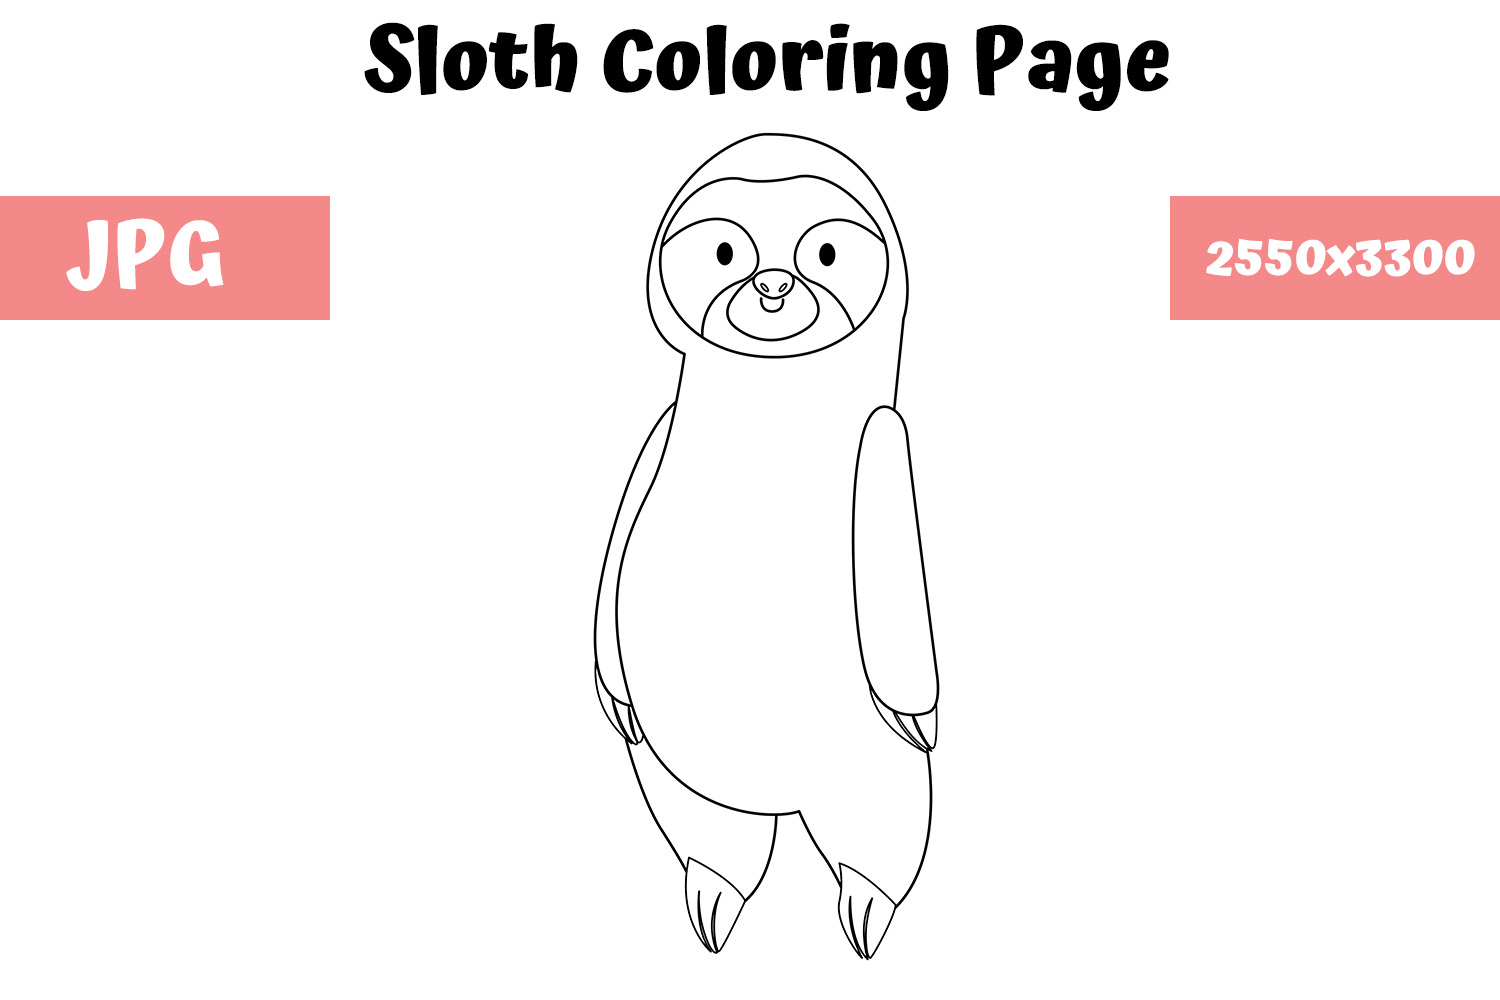 - Coloring Page For Kids - Sloth (Graphic) By MyBeautifulFiles